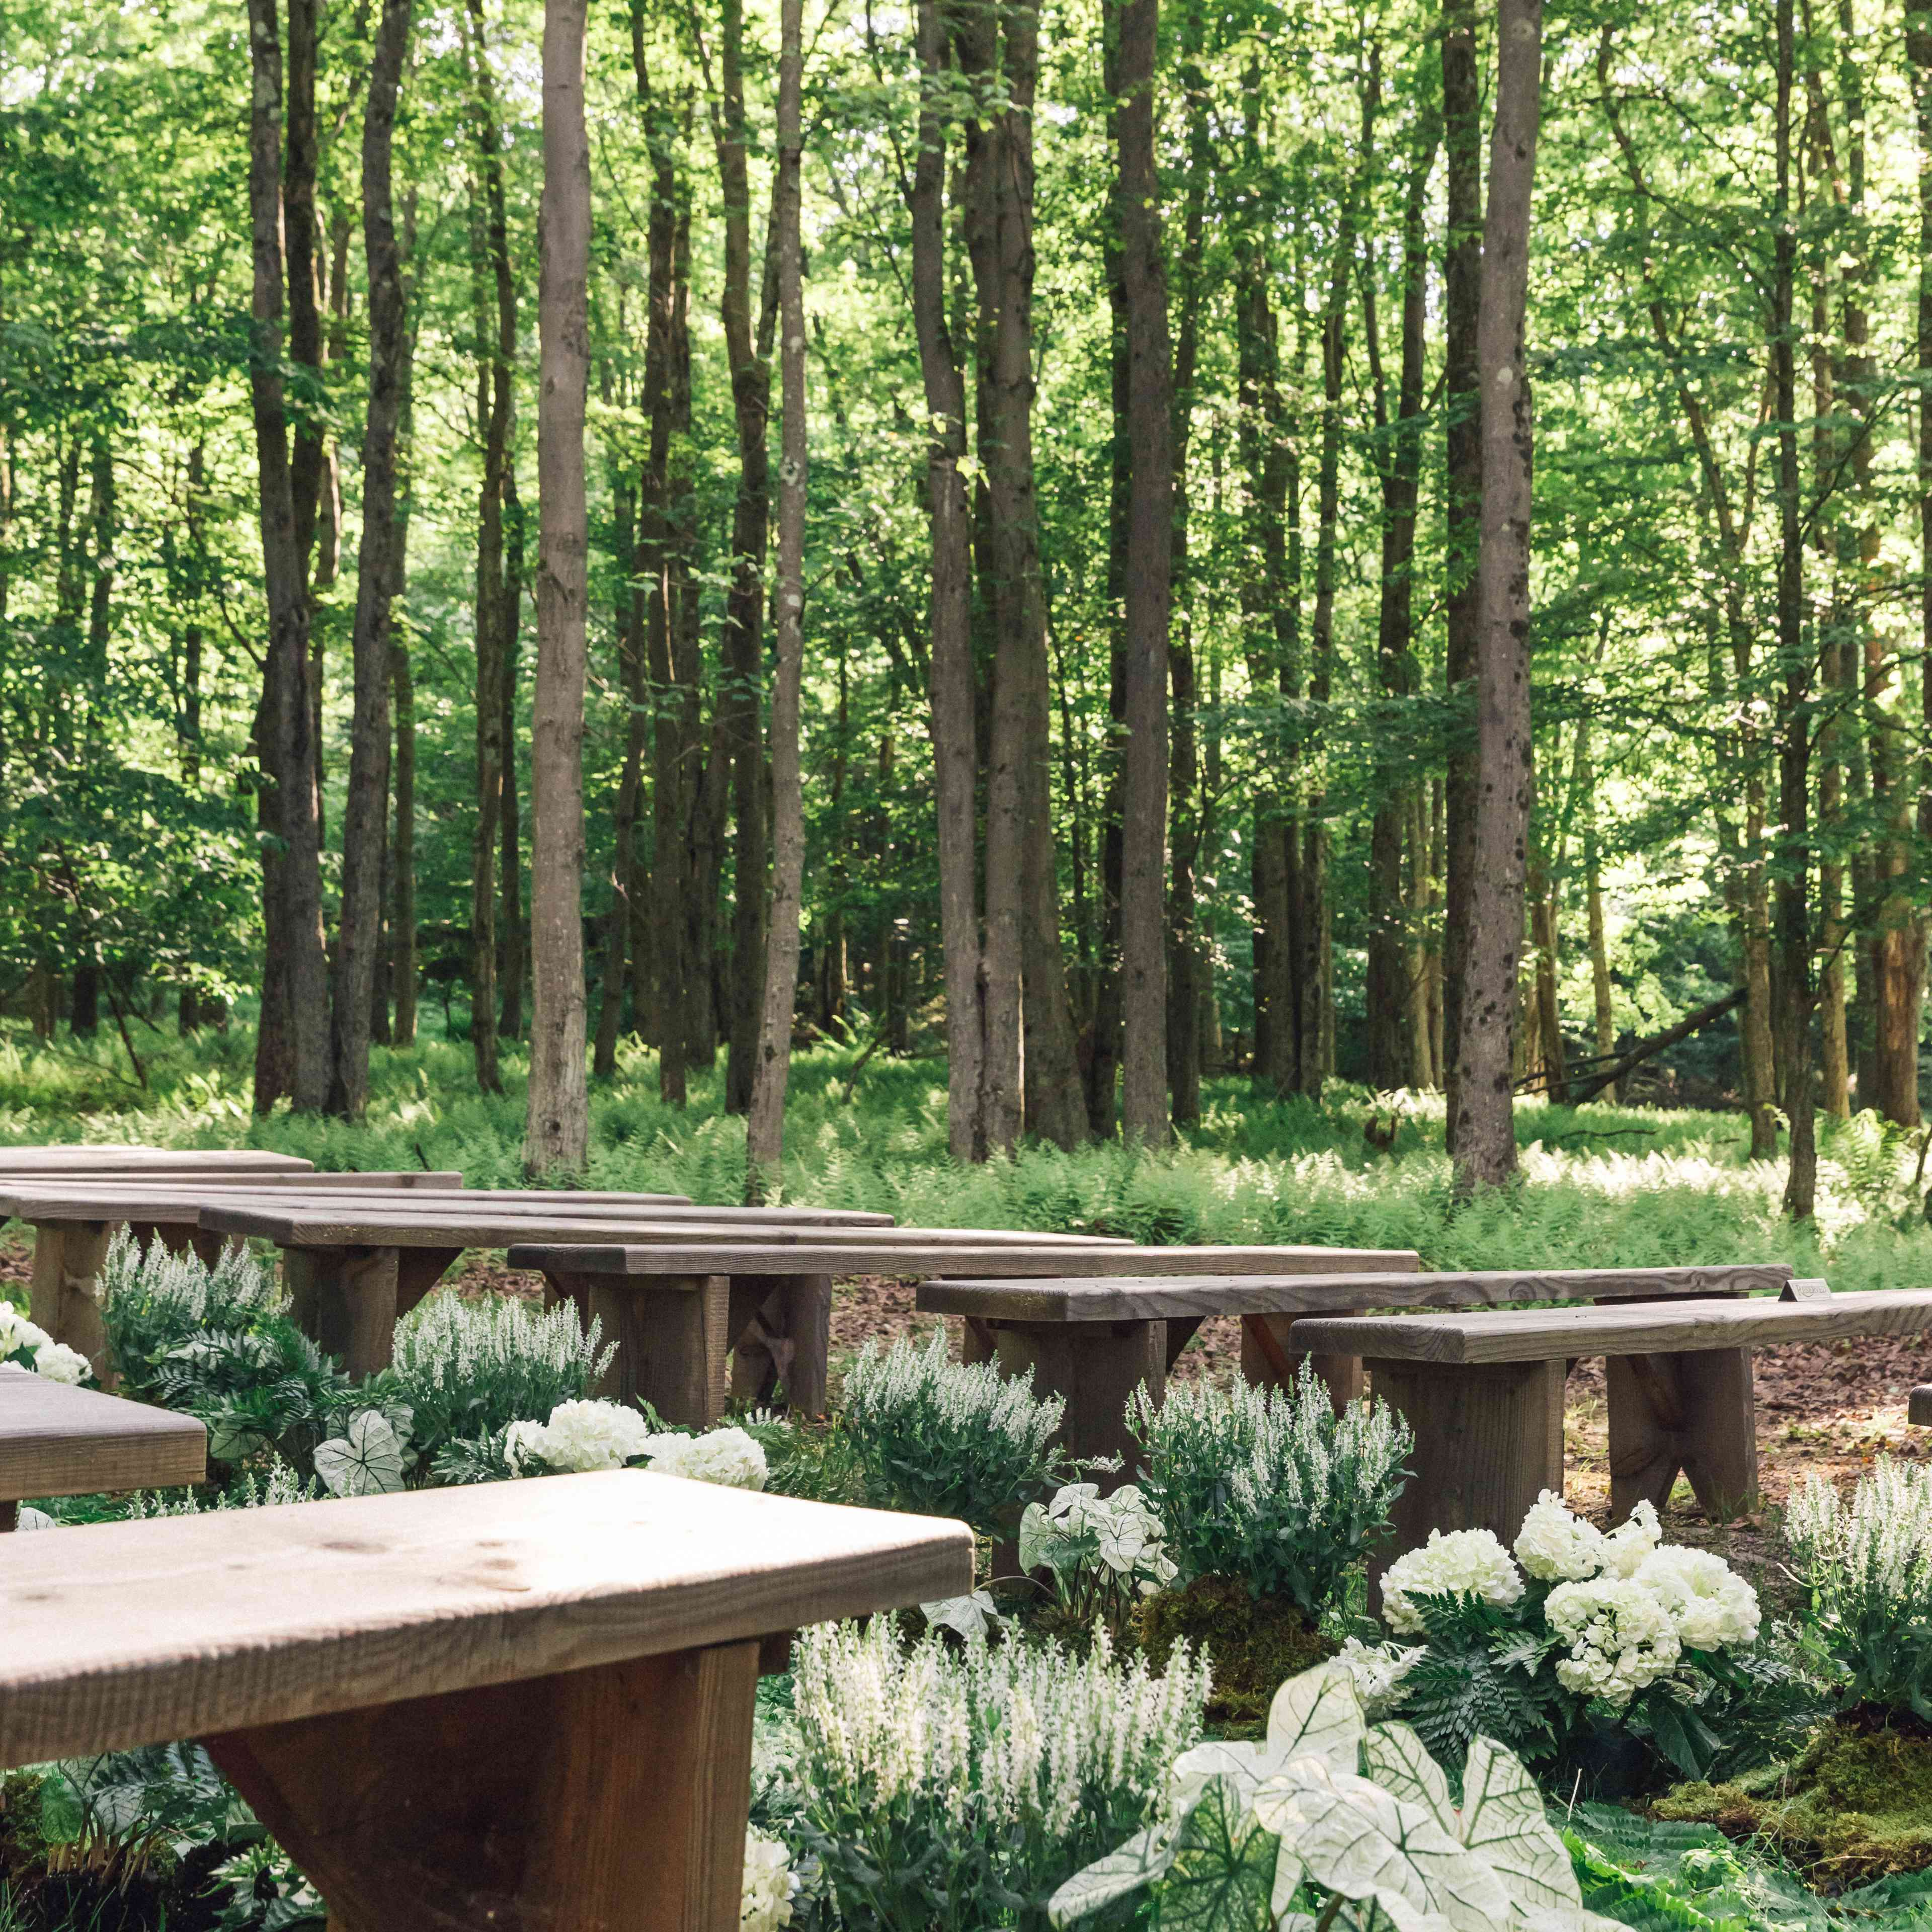 Forest ceremony wooden bench seating lined with ferns